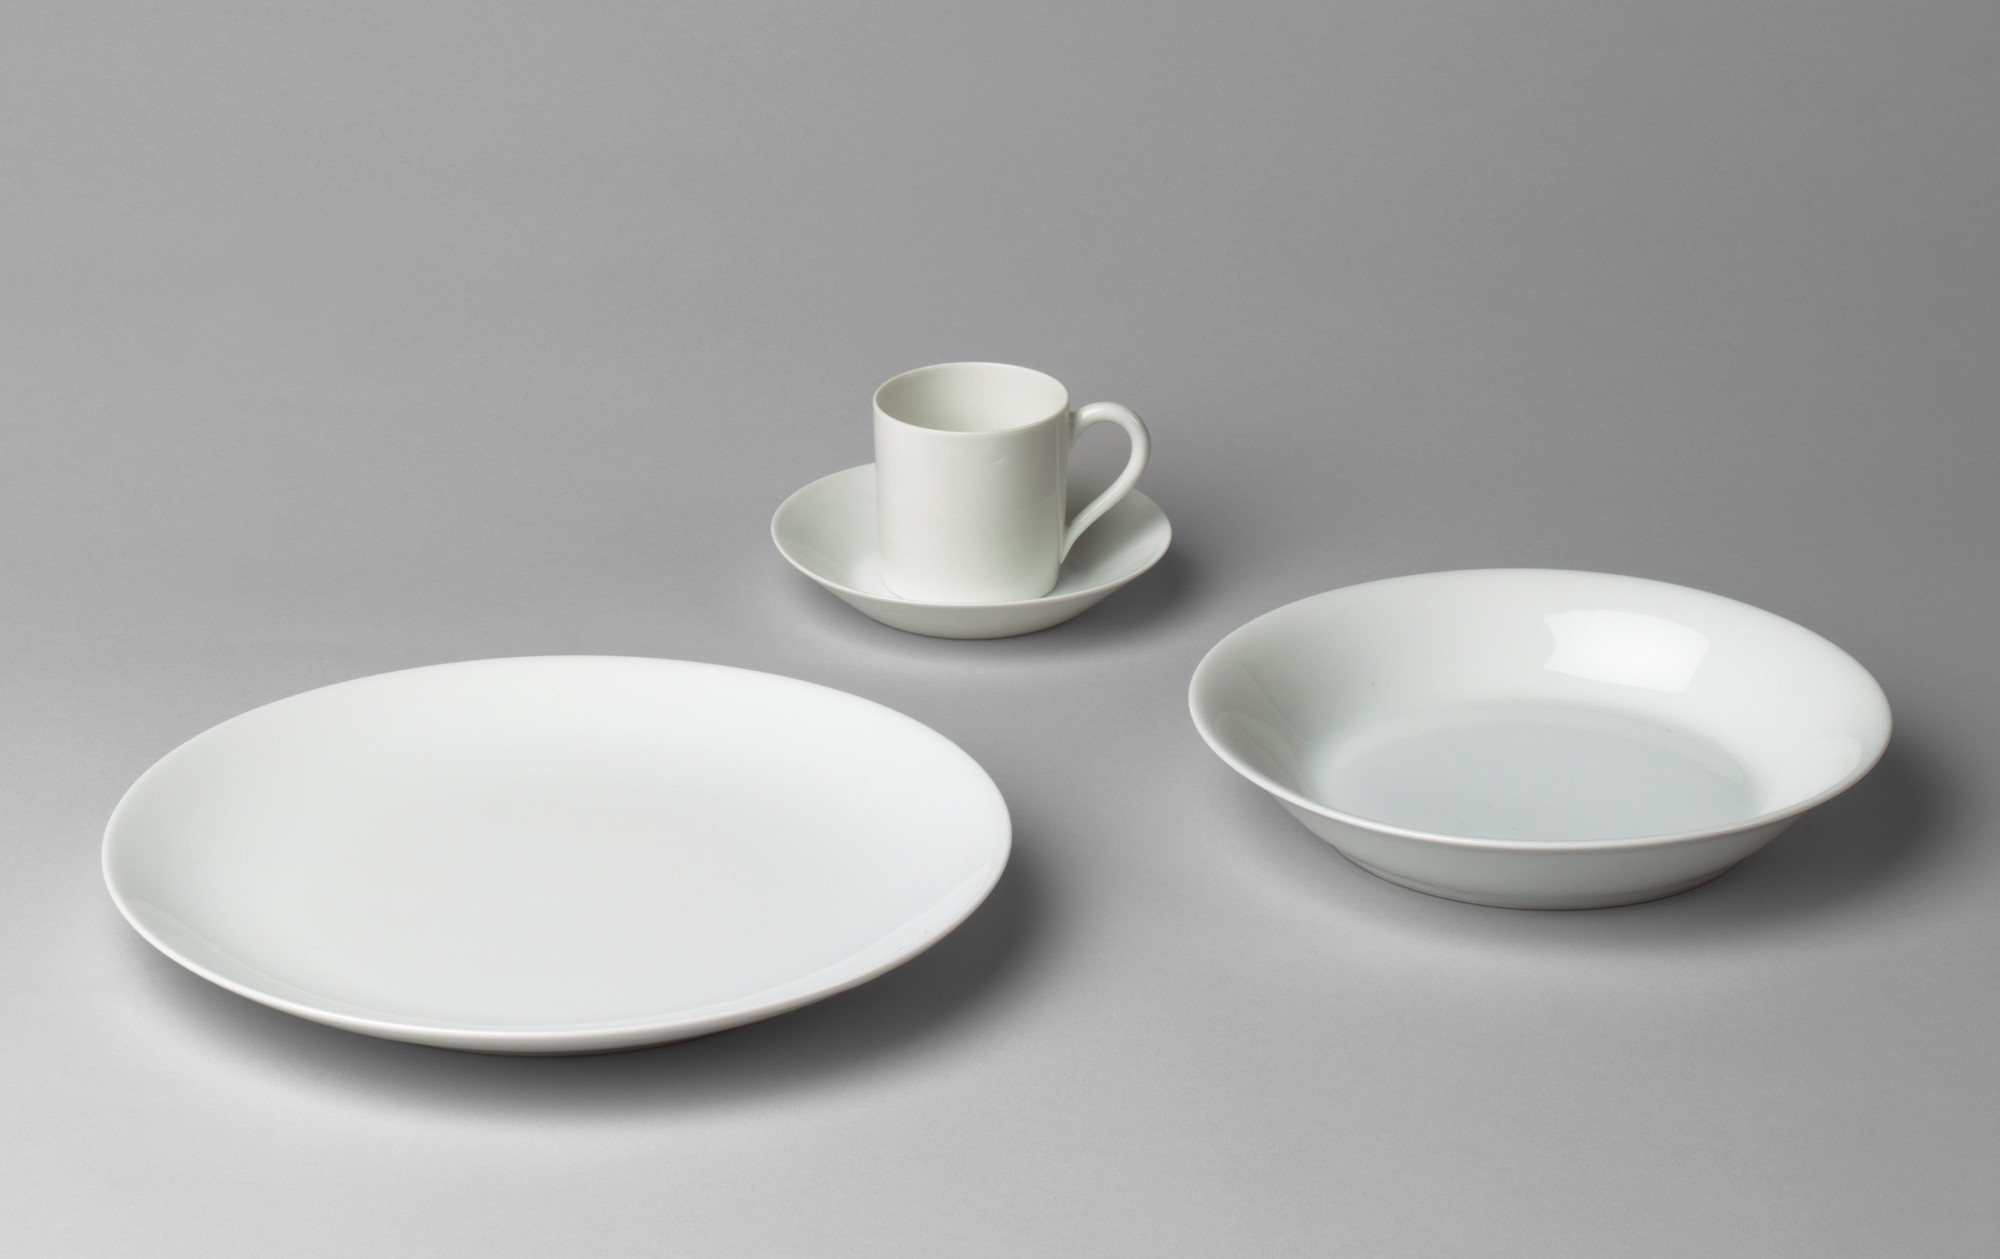 André Giraud & Brousseau, Limoges, France  Dinnerware